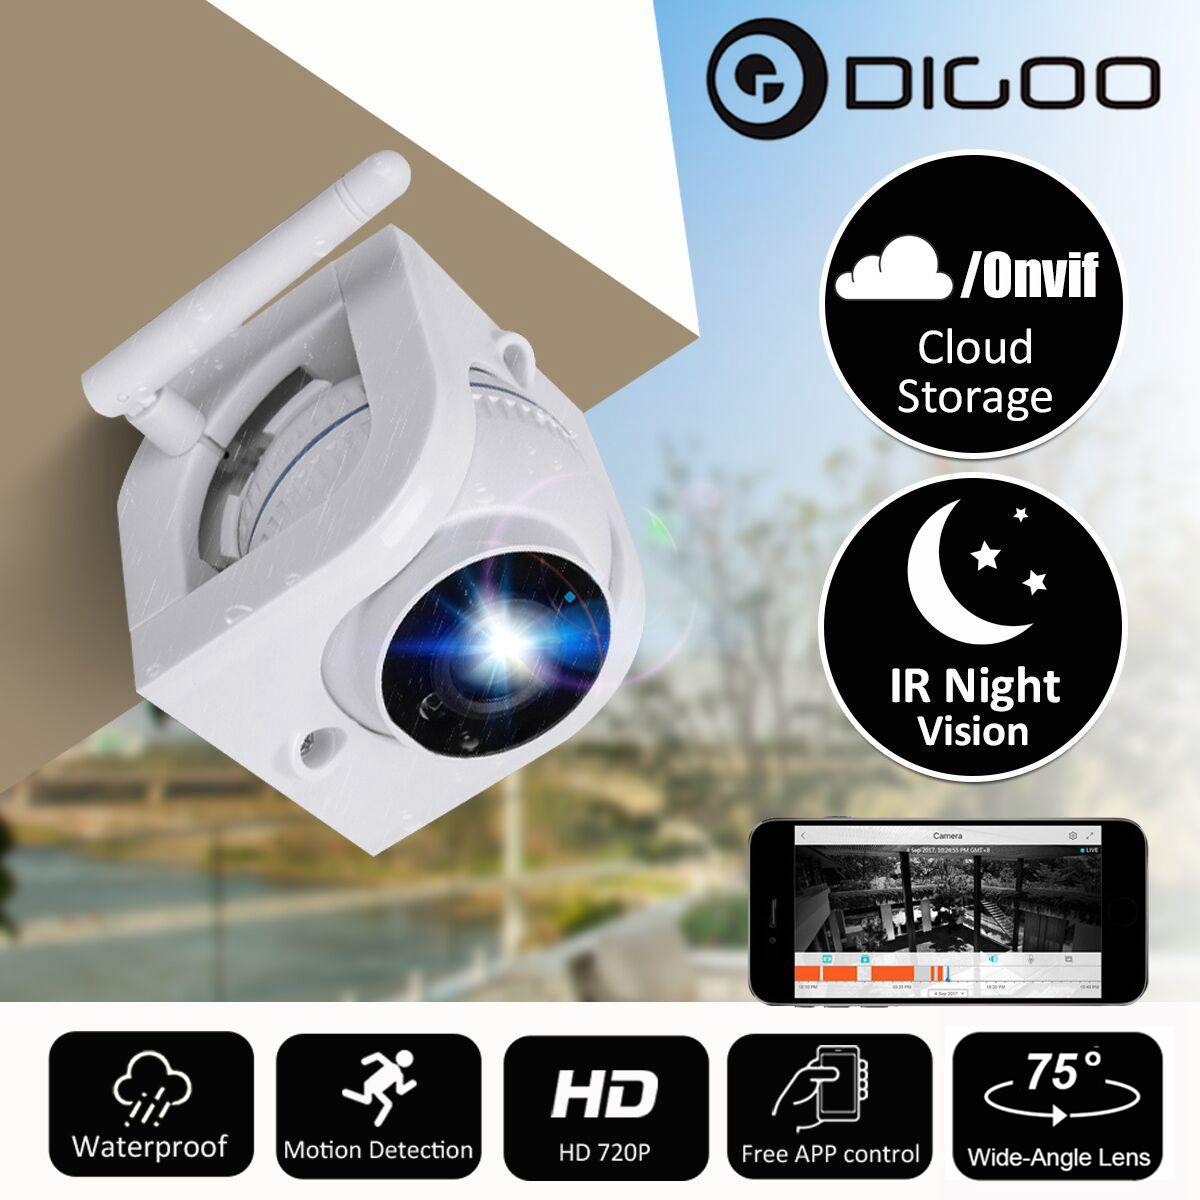 3.6mm 720P IP Camera For Home Security Cloud Storage Waterproof Outdoor Wifi Video Surveillance Camera Night Vision Alarm Onvif